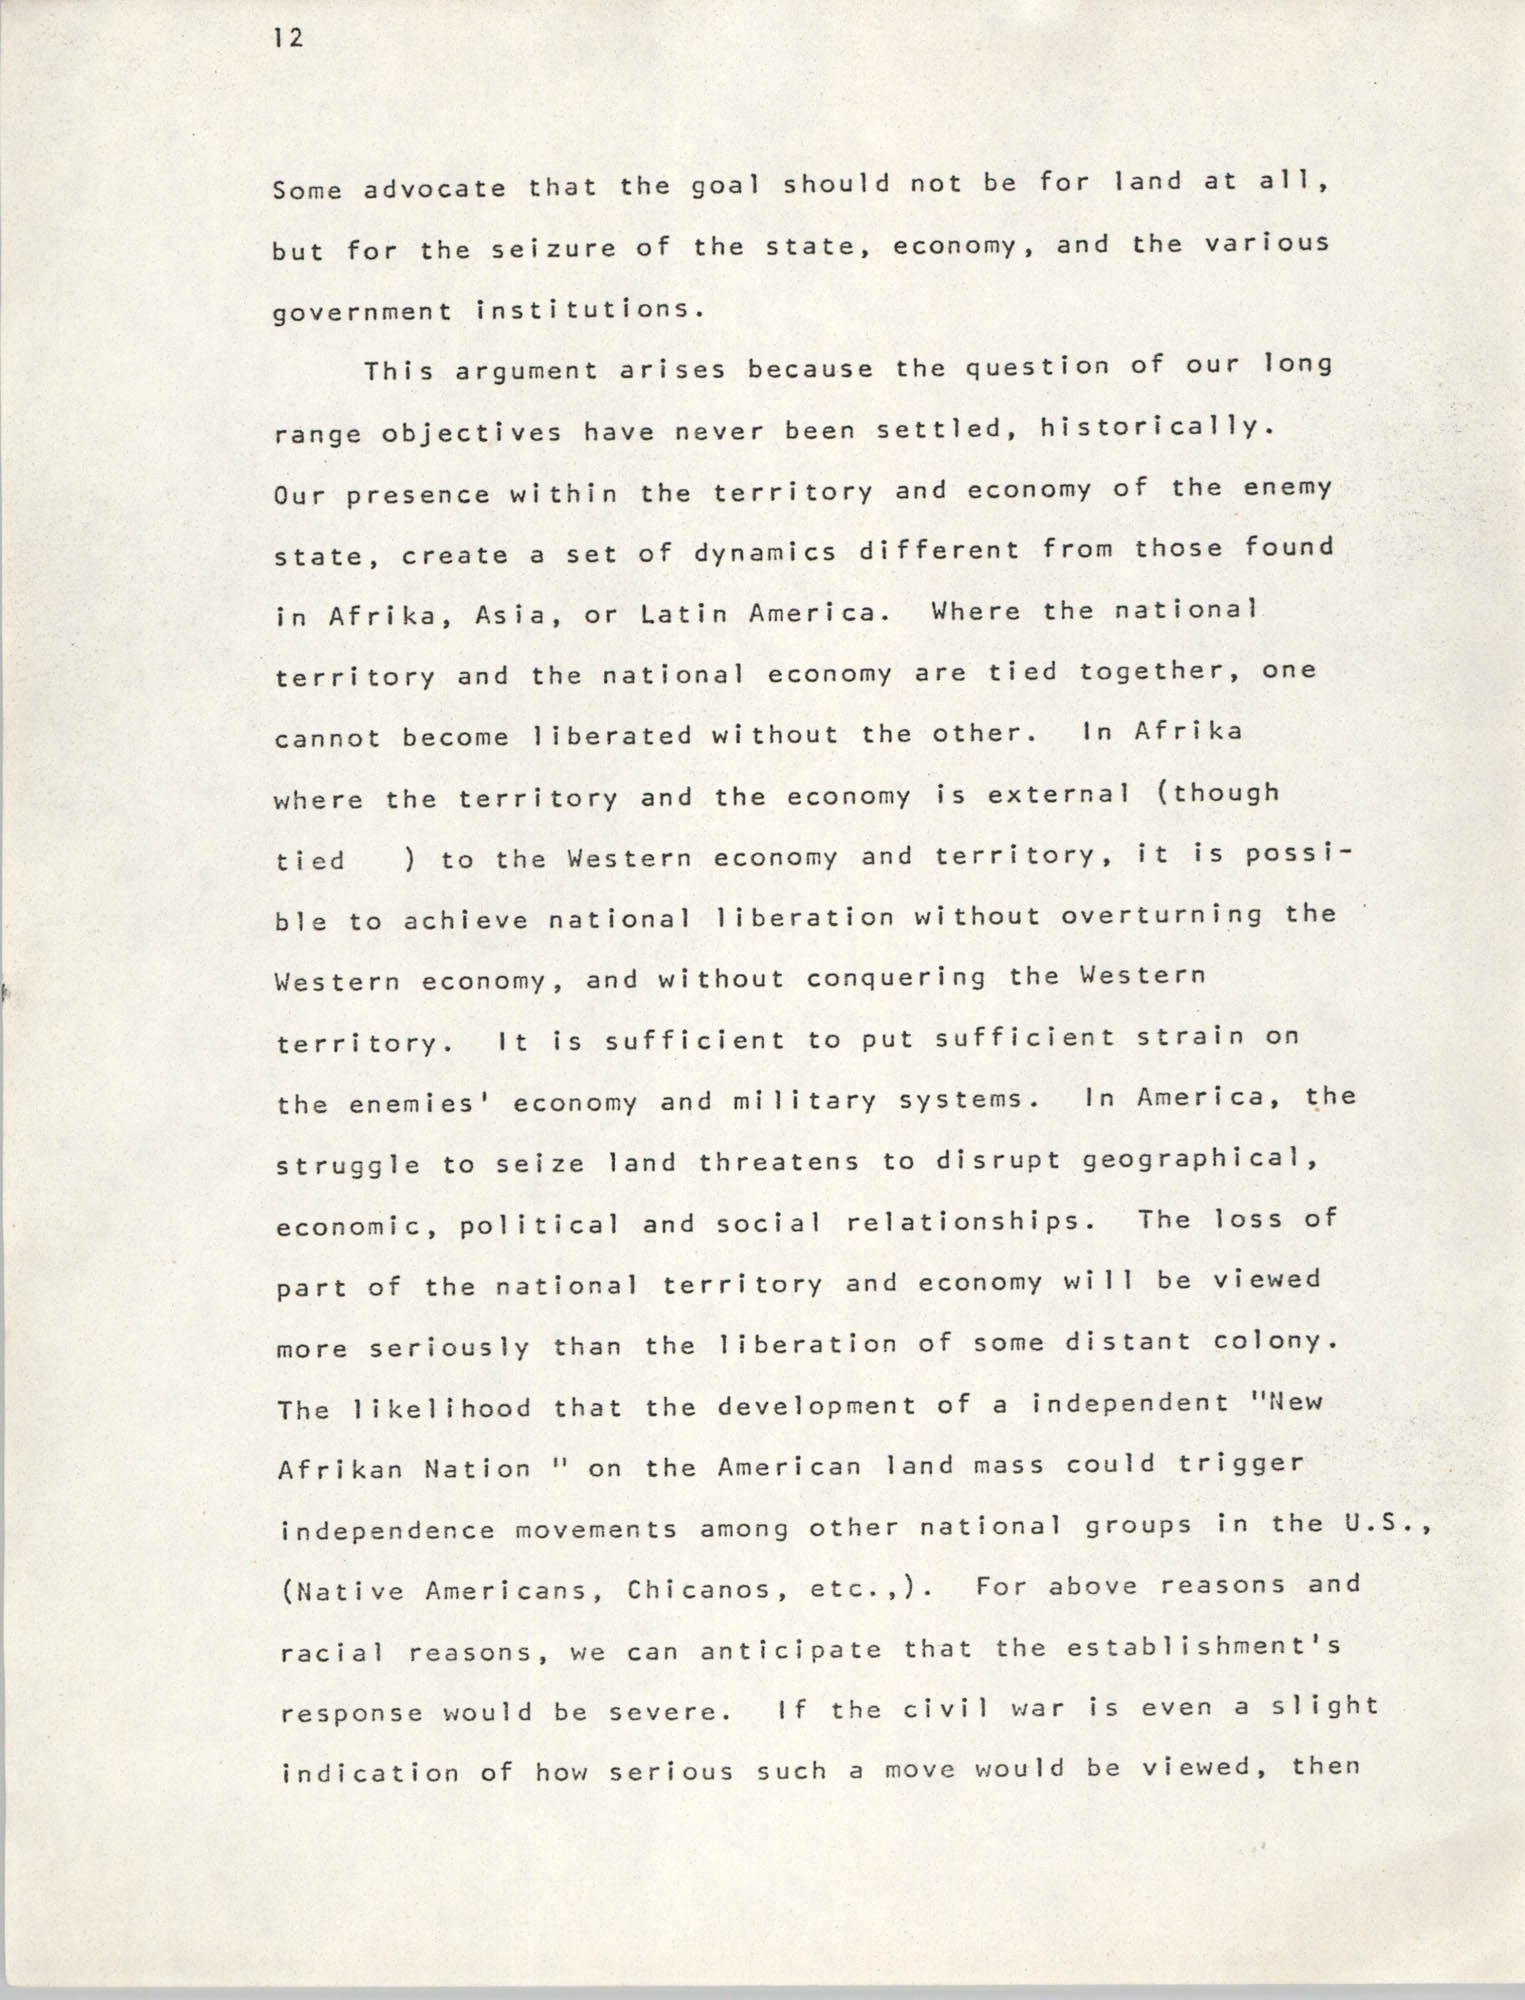 Pan-African Committee of the Black United Front, Page 12